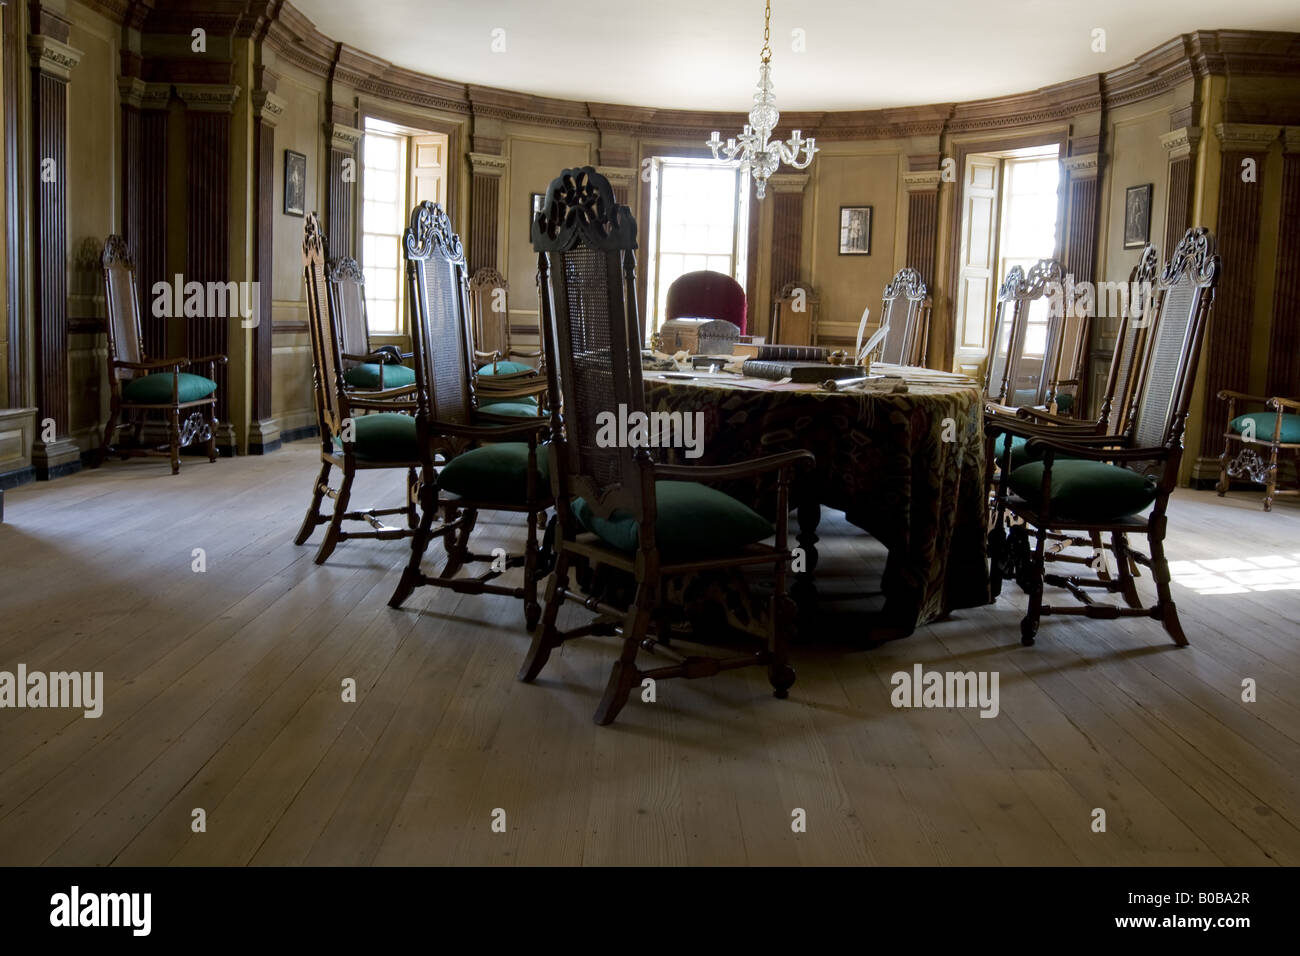 Council Chamber Capitol, Colonial Williamsburg, Virginia - Stock Image